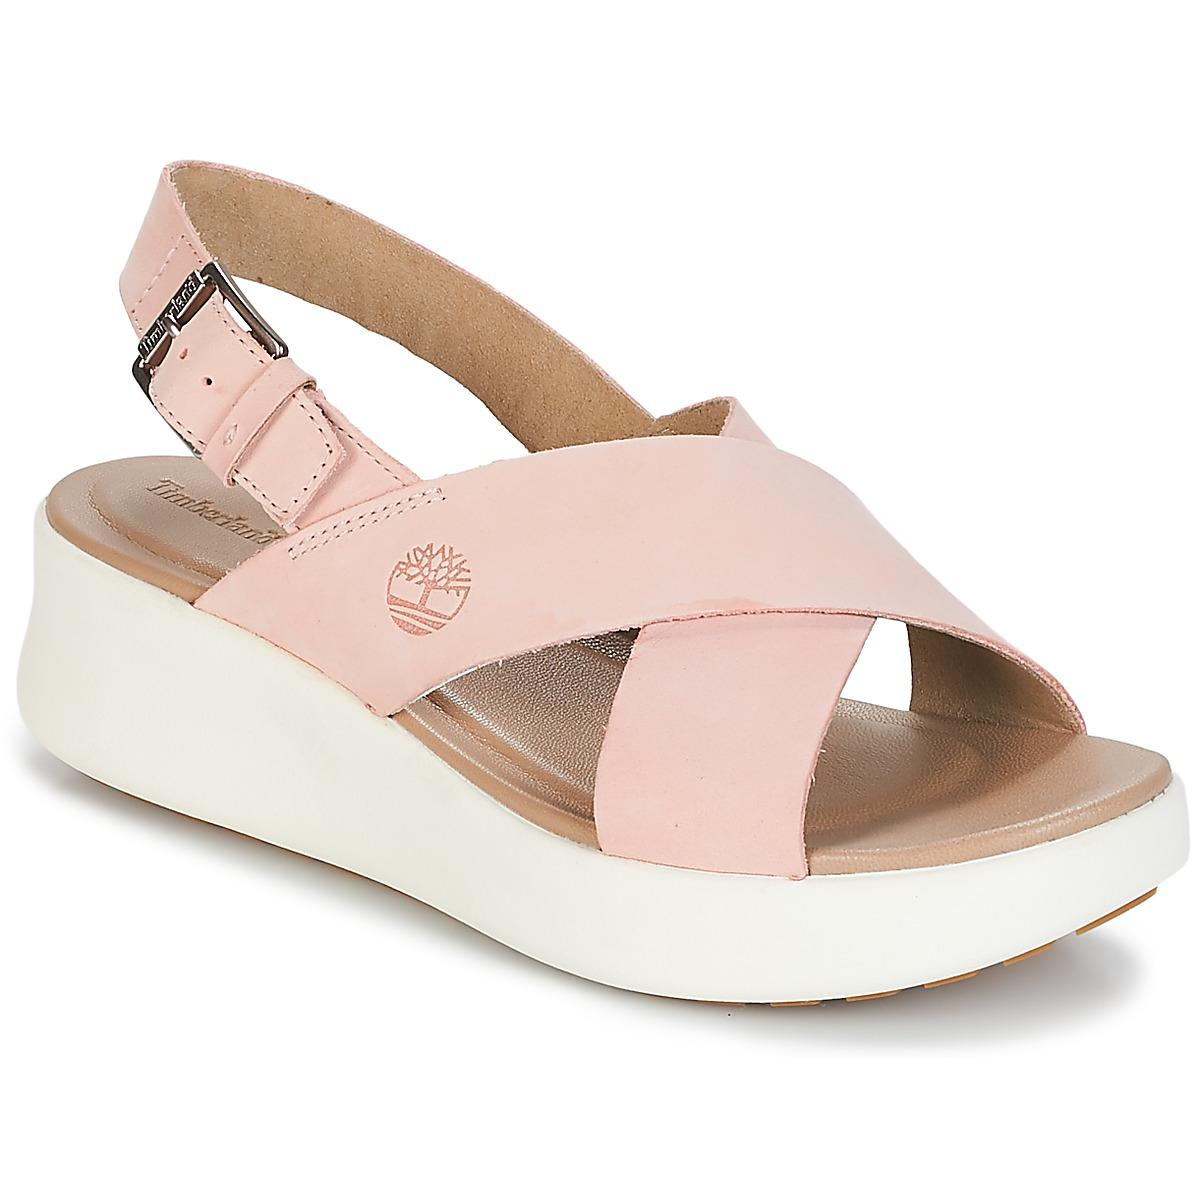 c010a822748d Timberland los angeles wind slingbac womens sandals in pink in pink jpg  1200x1200 Timberland wedges for